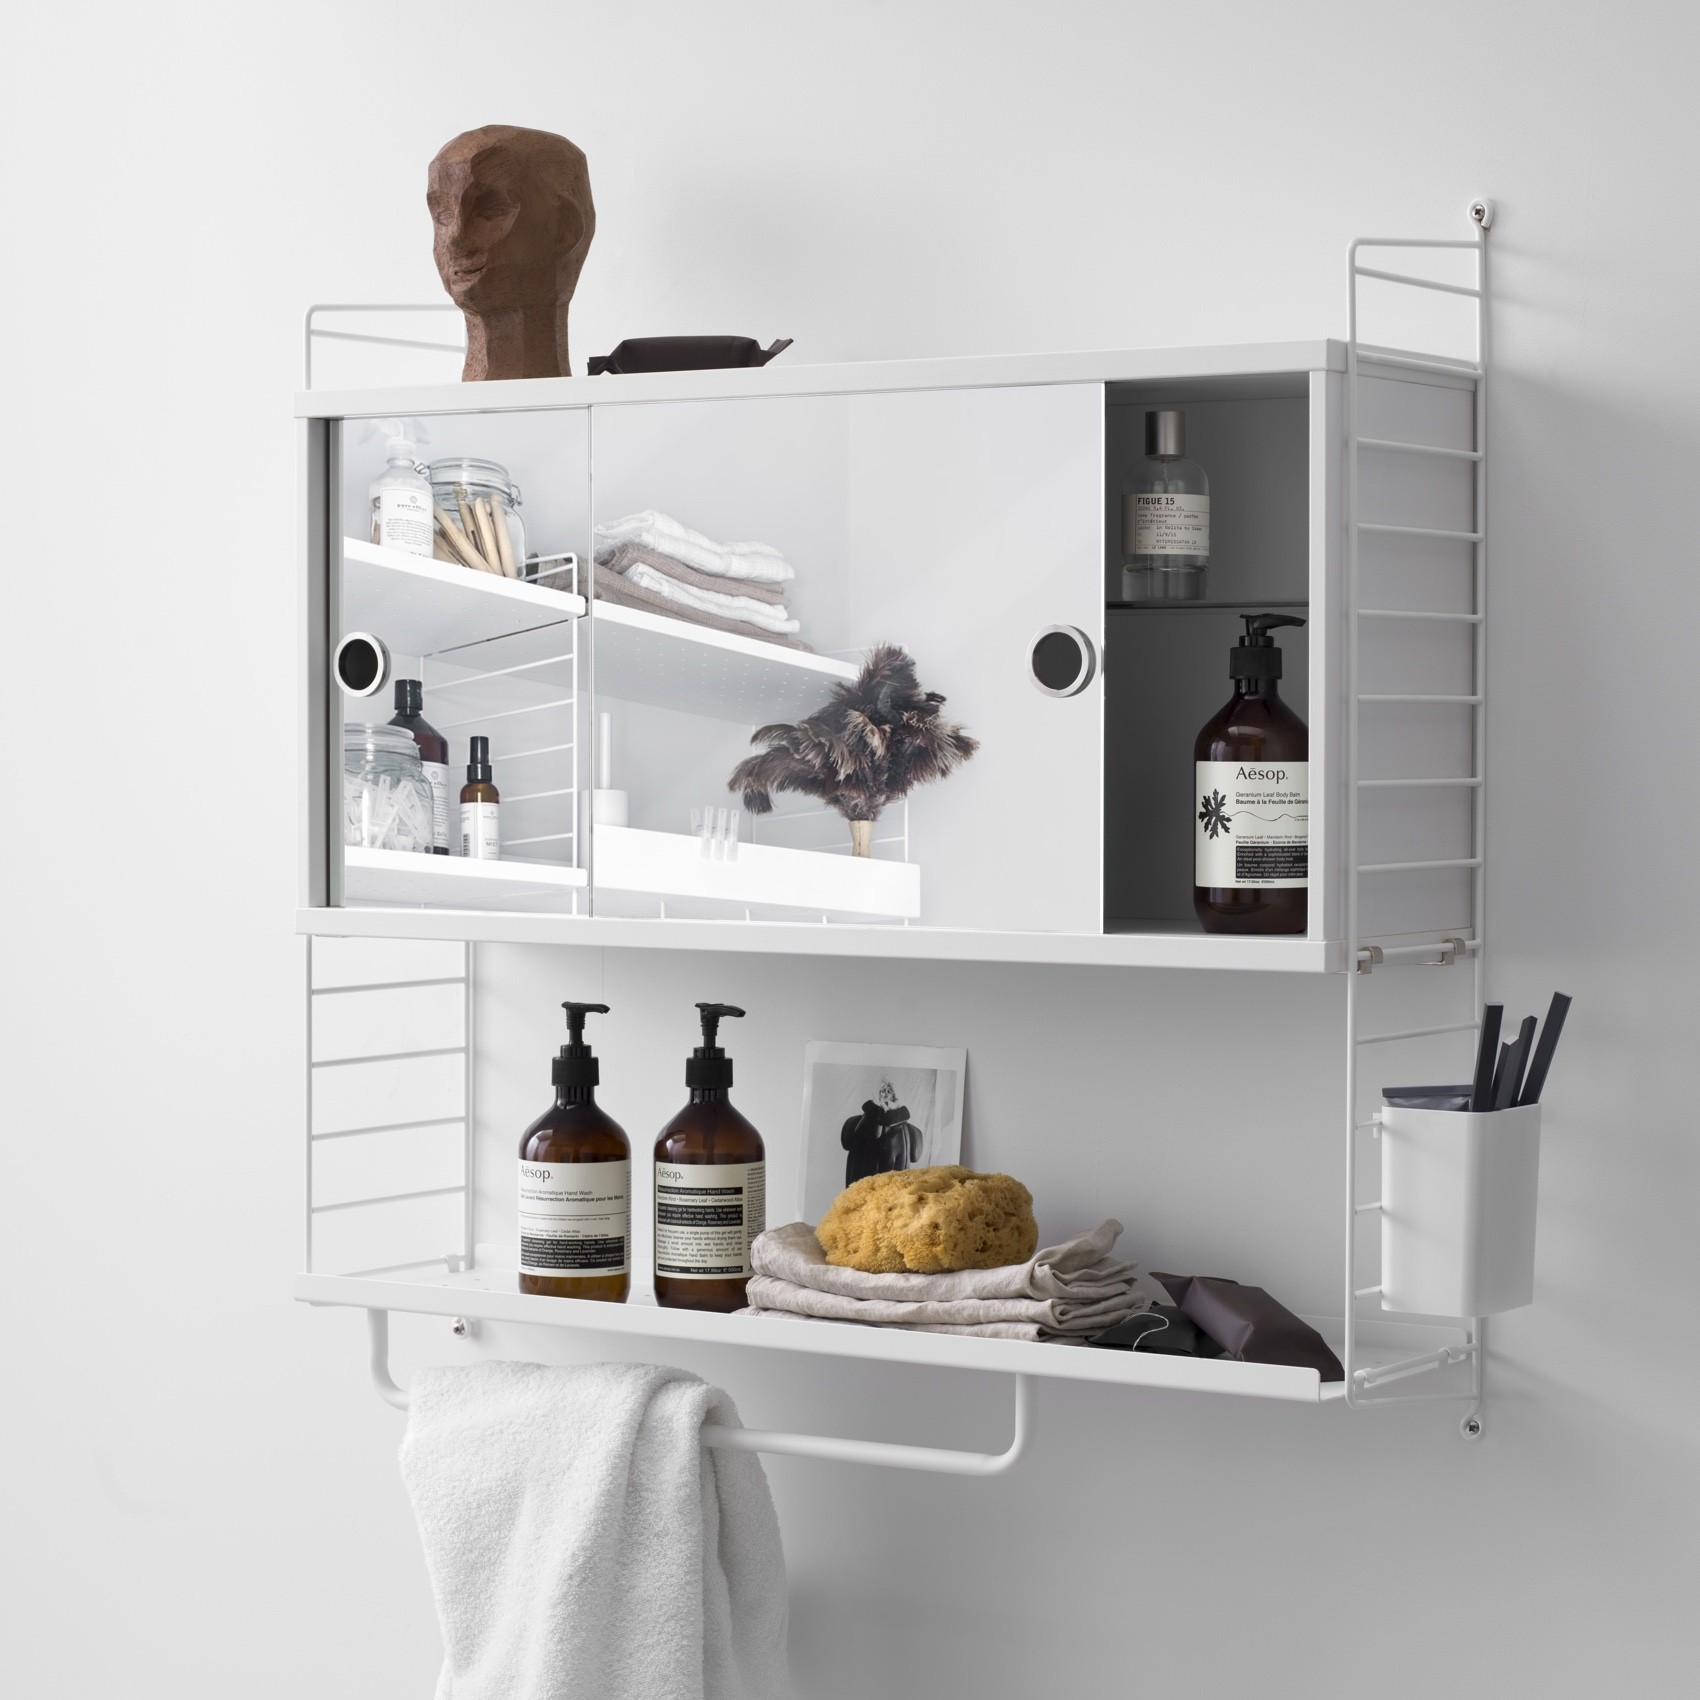 Miraculous String Shelving Bathroom Cabinet Funktion Alley Download Free Architecture Designs Scobabritishbridgeorg